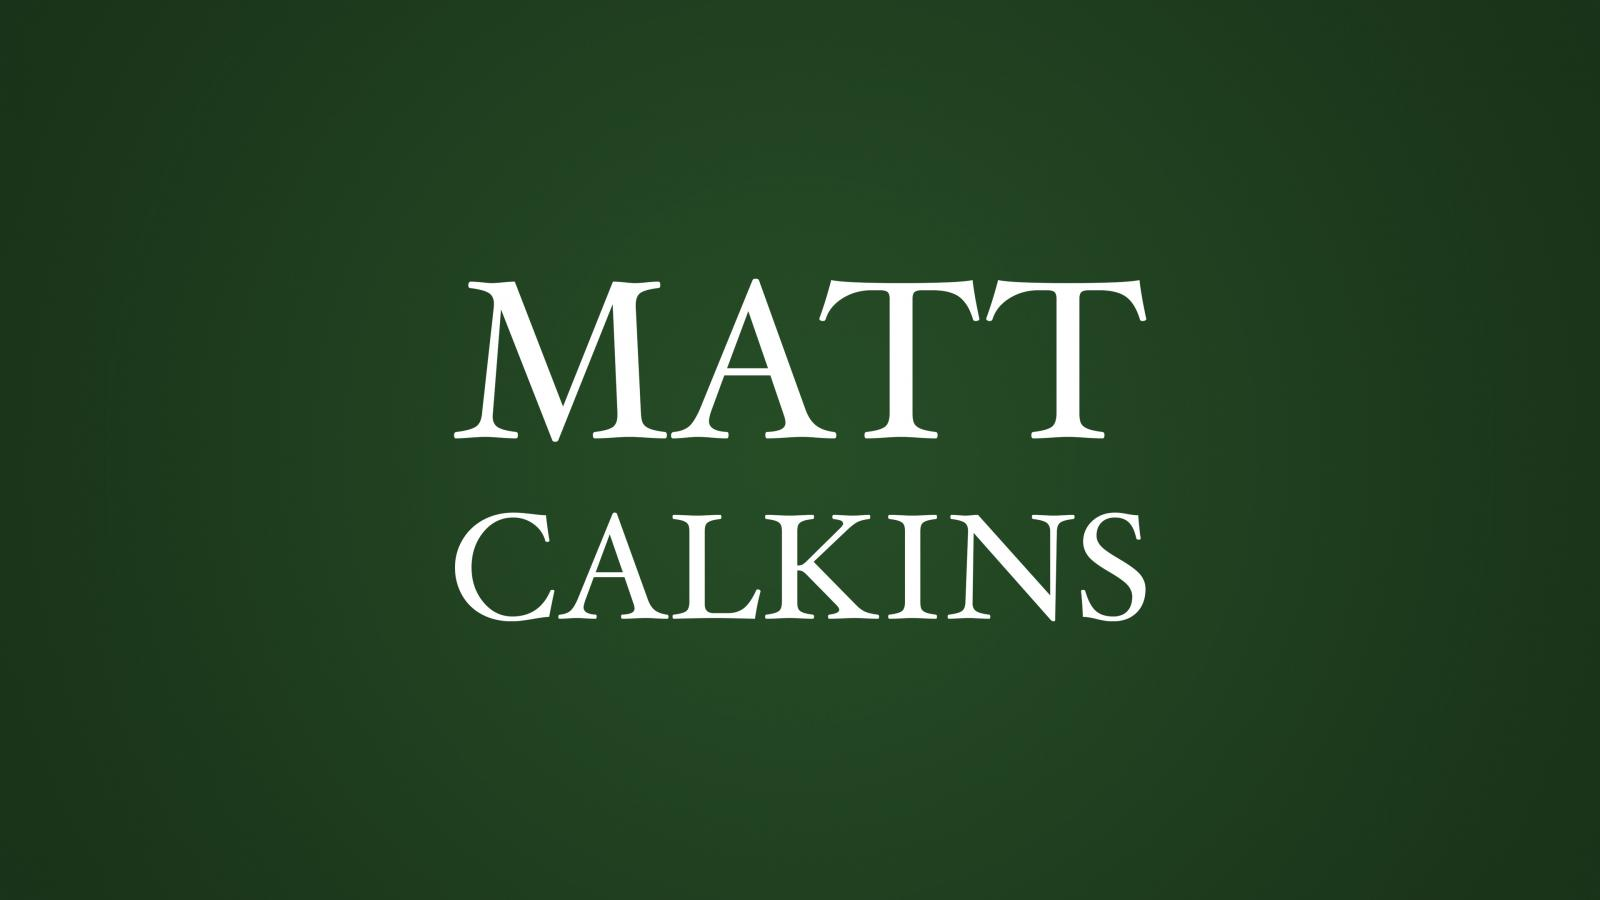 Matt Calkins